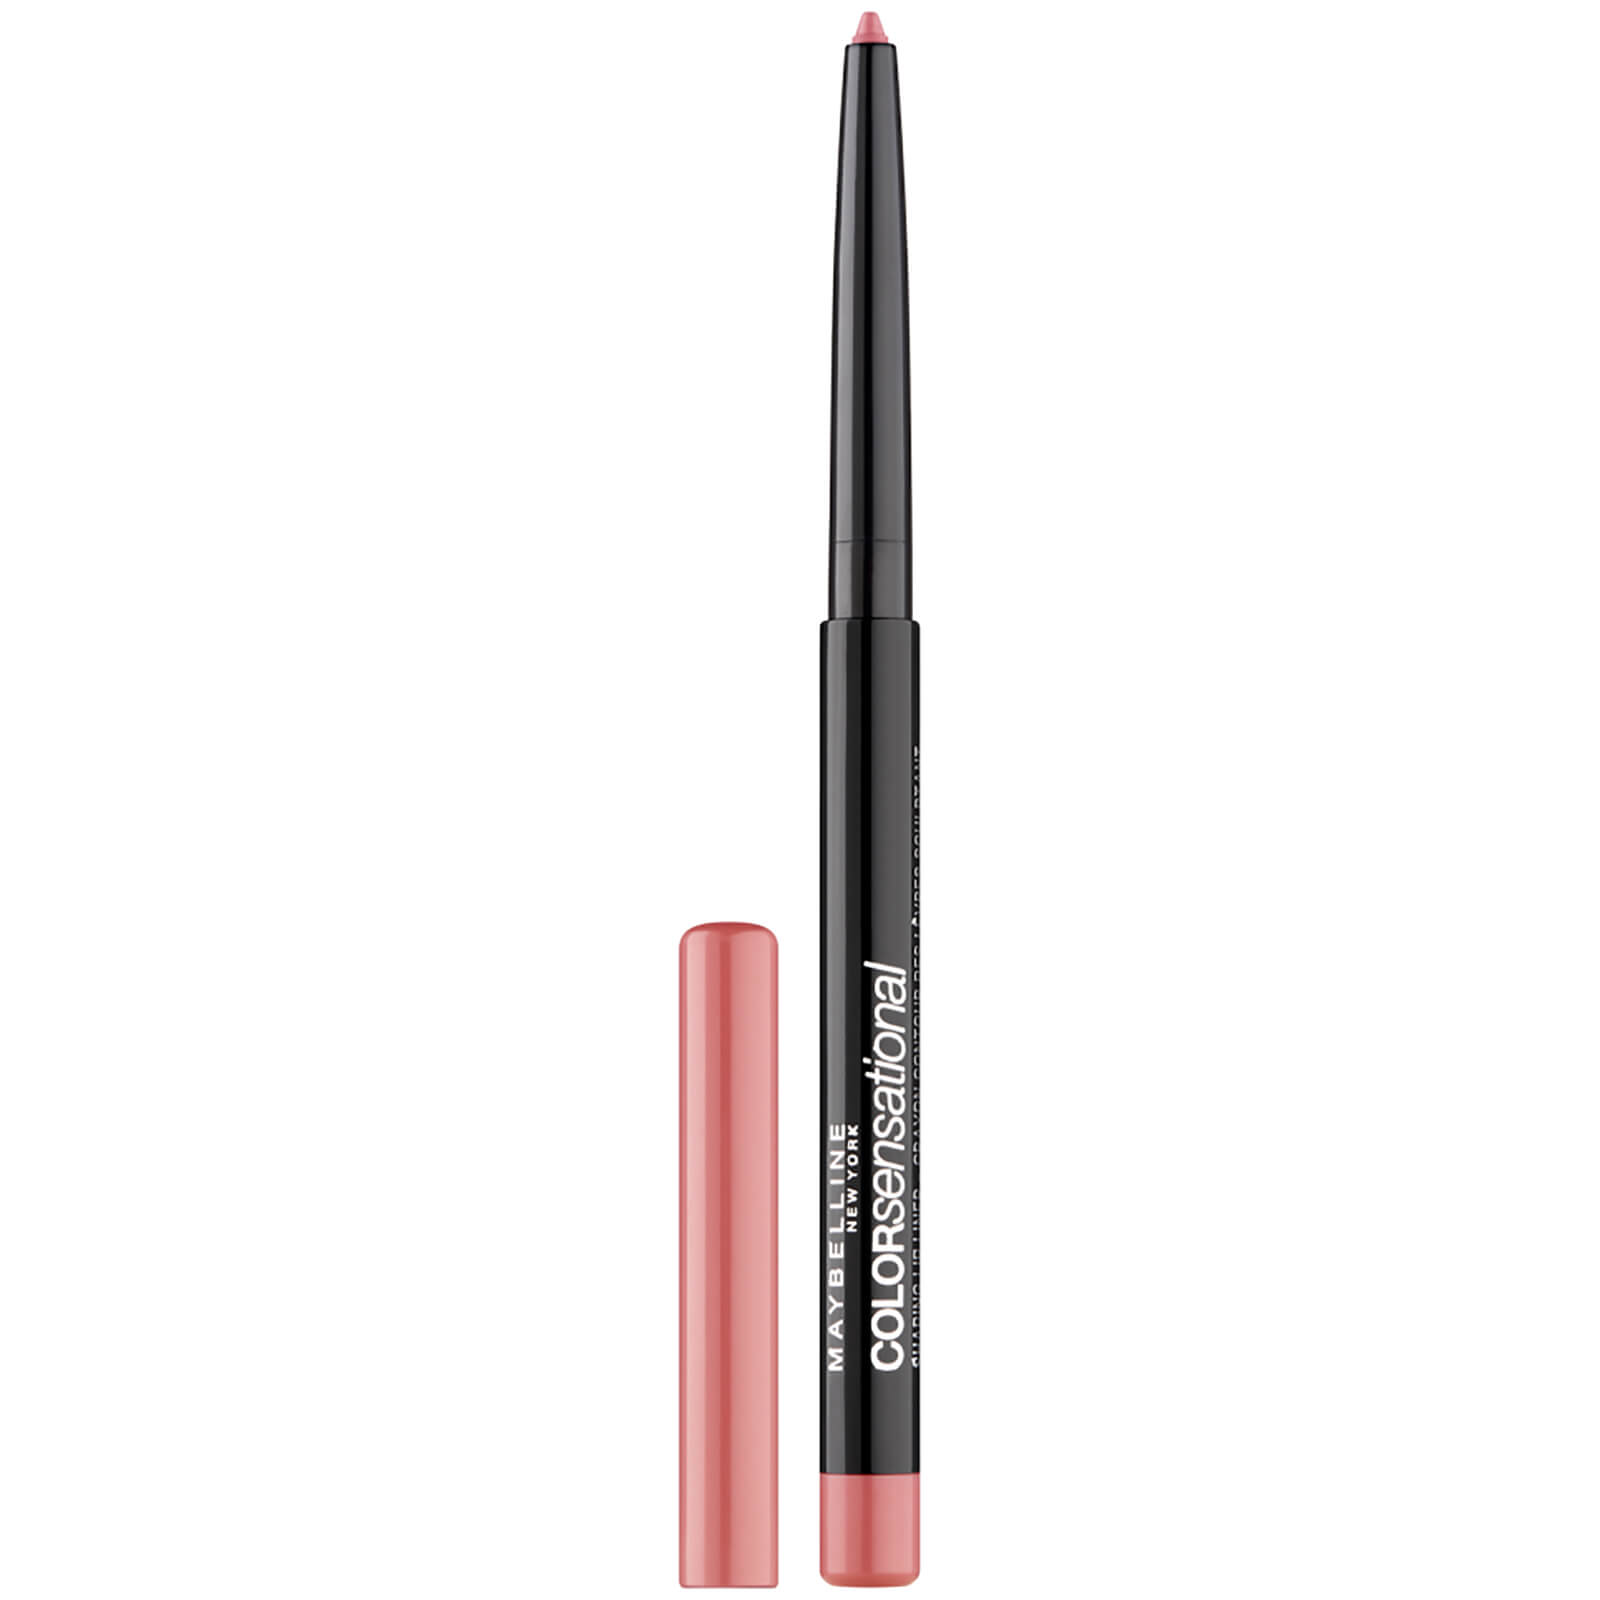 Maybelline Colorshow Shaping Lip Liner (Various Shades) - Dusty Rose  - Купить